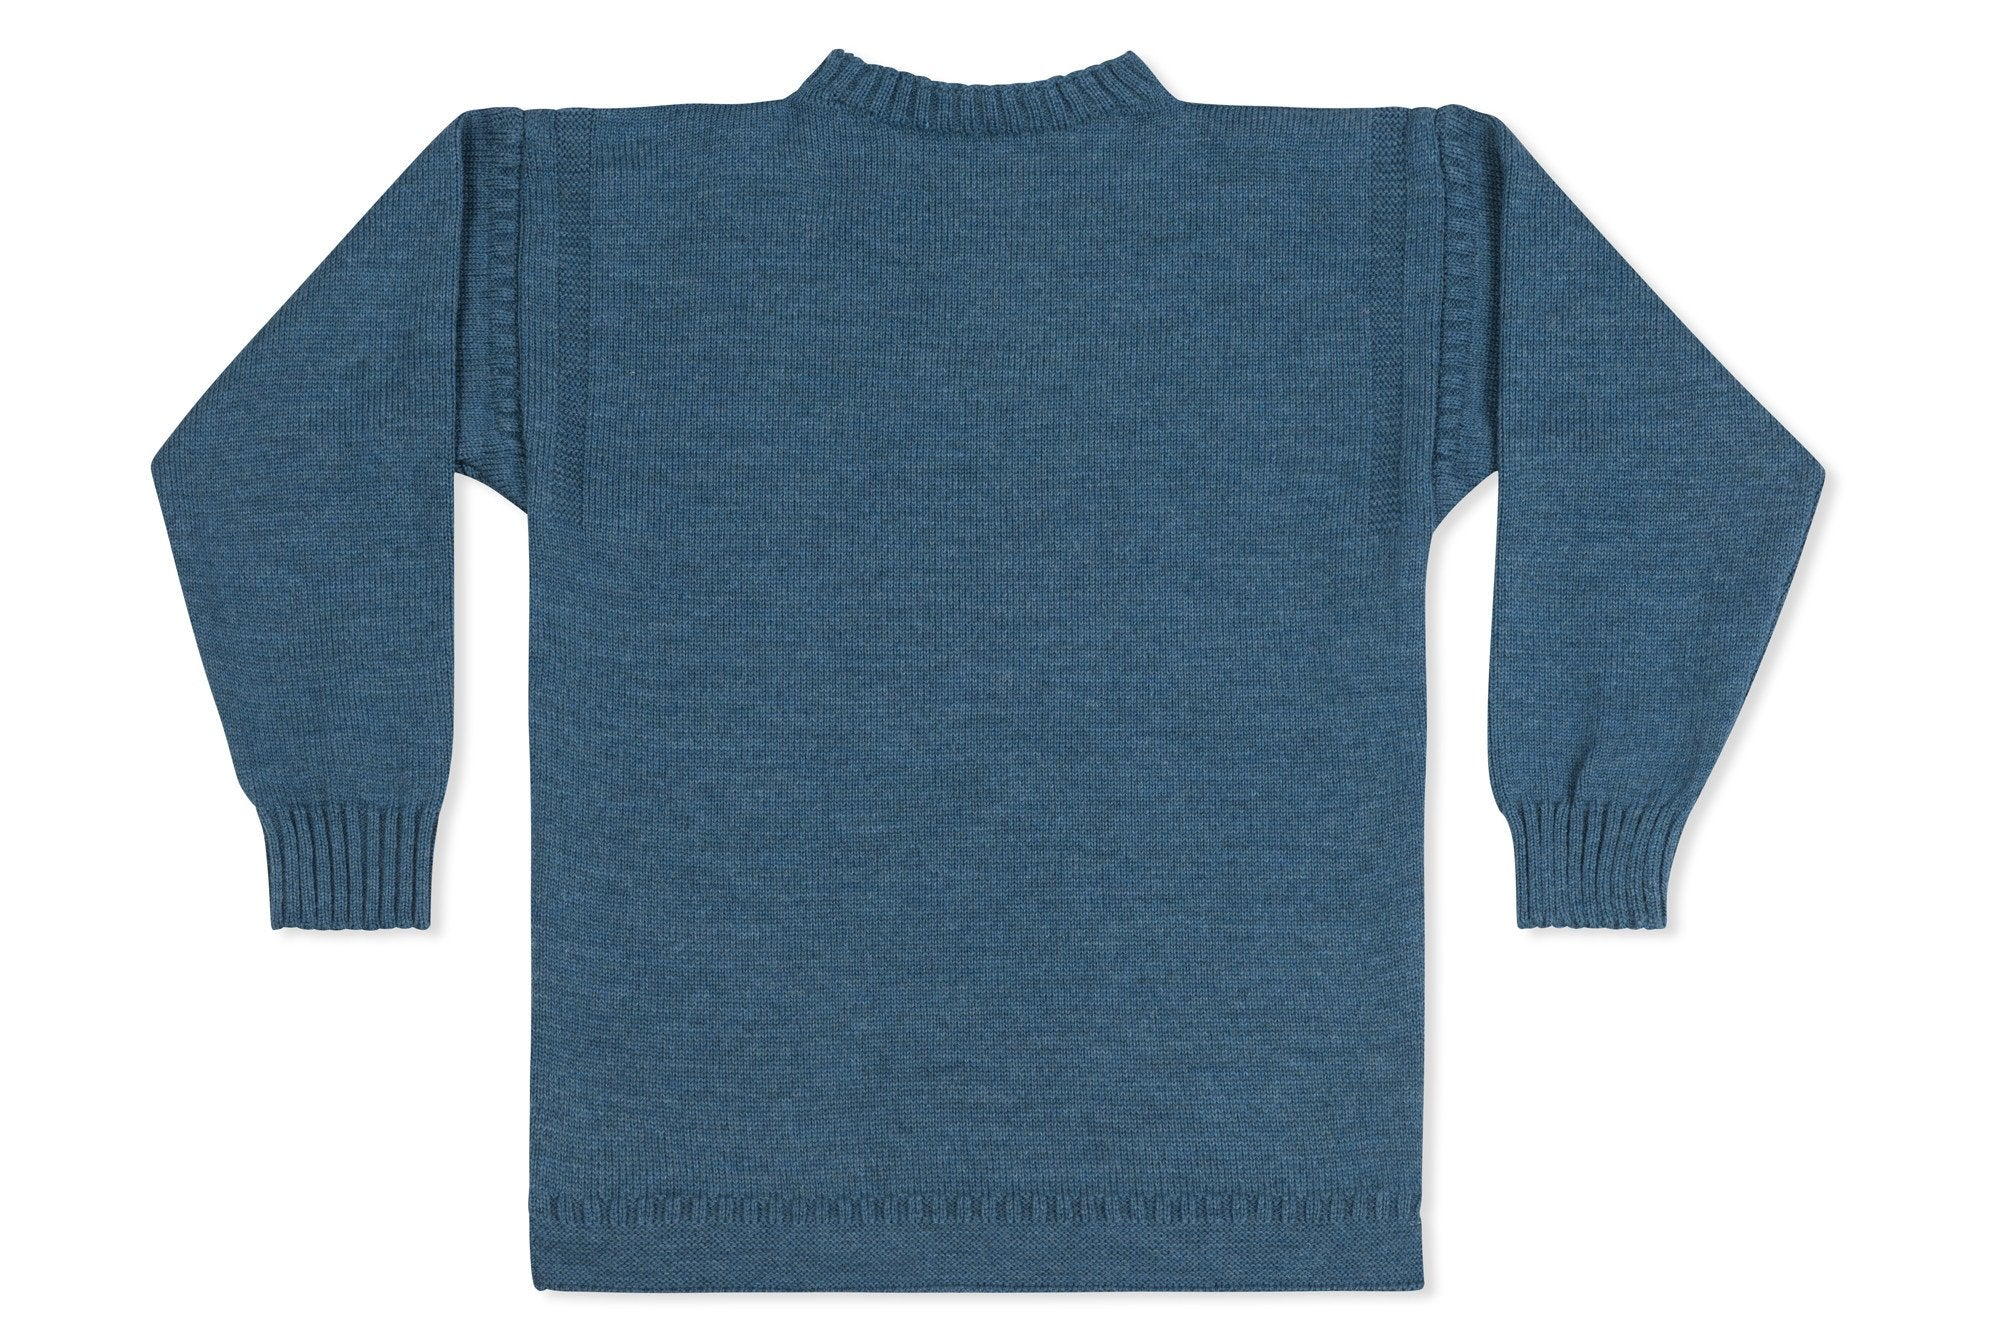 ed290b95c Jersey Crew Neck Jumper With Anchor Motif In Navy - Guernsey ...